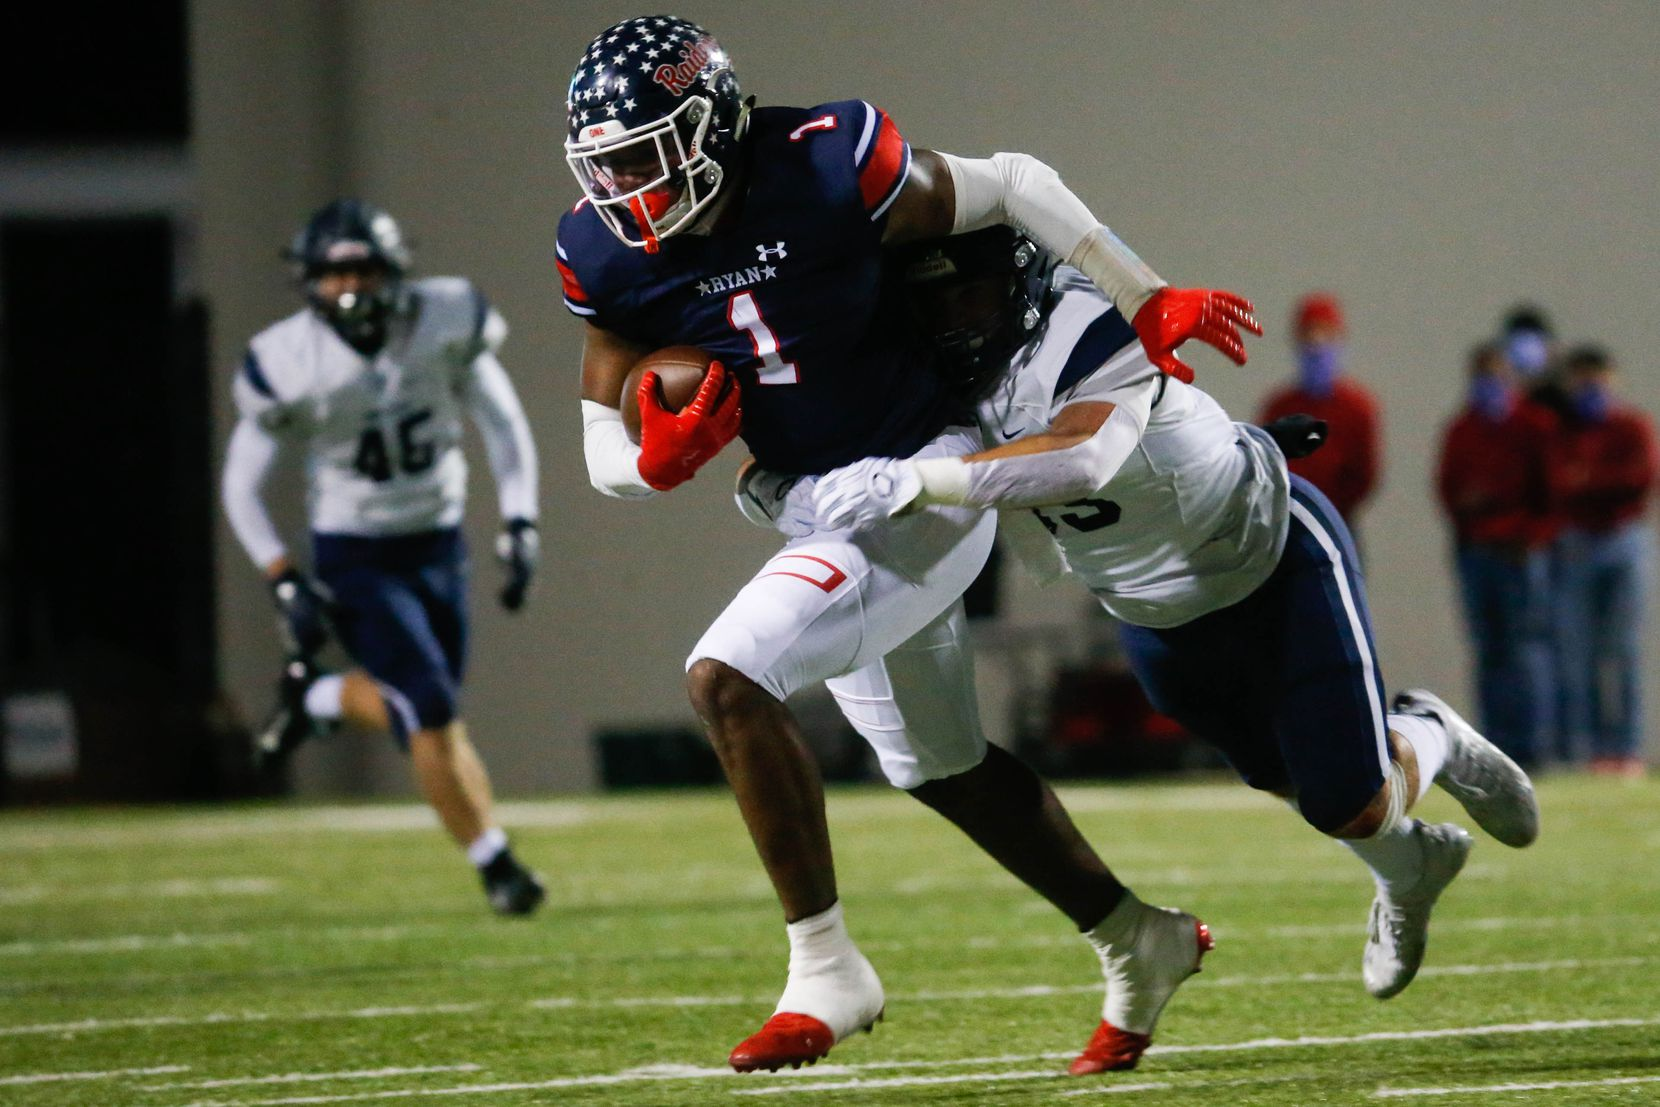 Denton Ryan's Ja'tavion Sanders (1) is tackled during the first half of a football game against Frisco Lone Star at the C.H. Collins Complex in Denton on Thursday, Dec. 4, 2020. The game is tied at halftime, 14-14. (Juan Figueroa/ The Dallas Morning News)